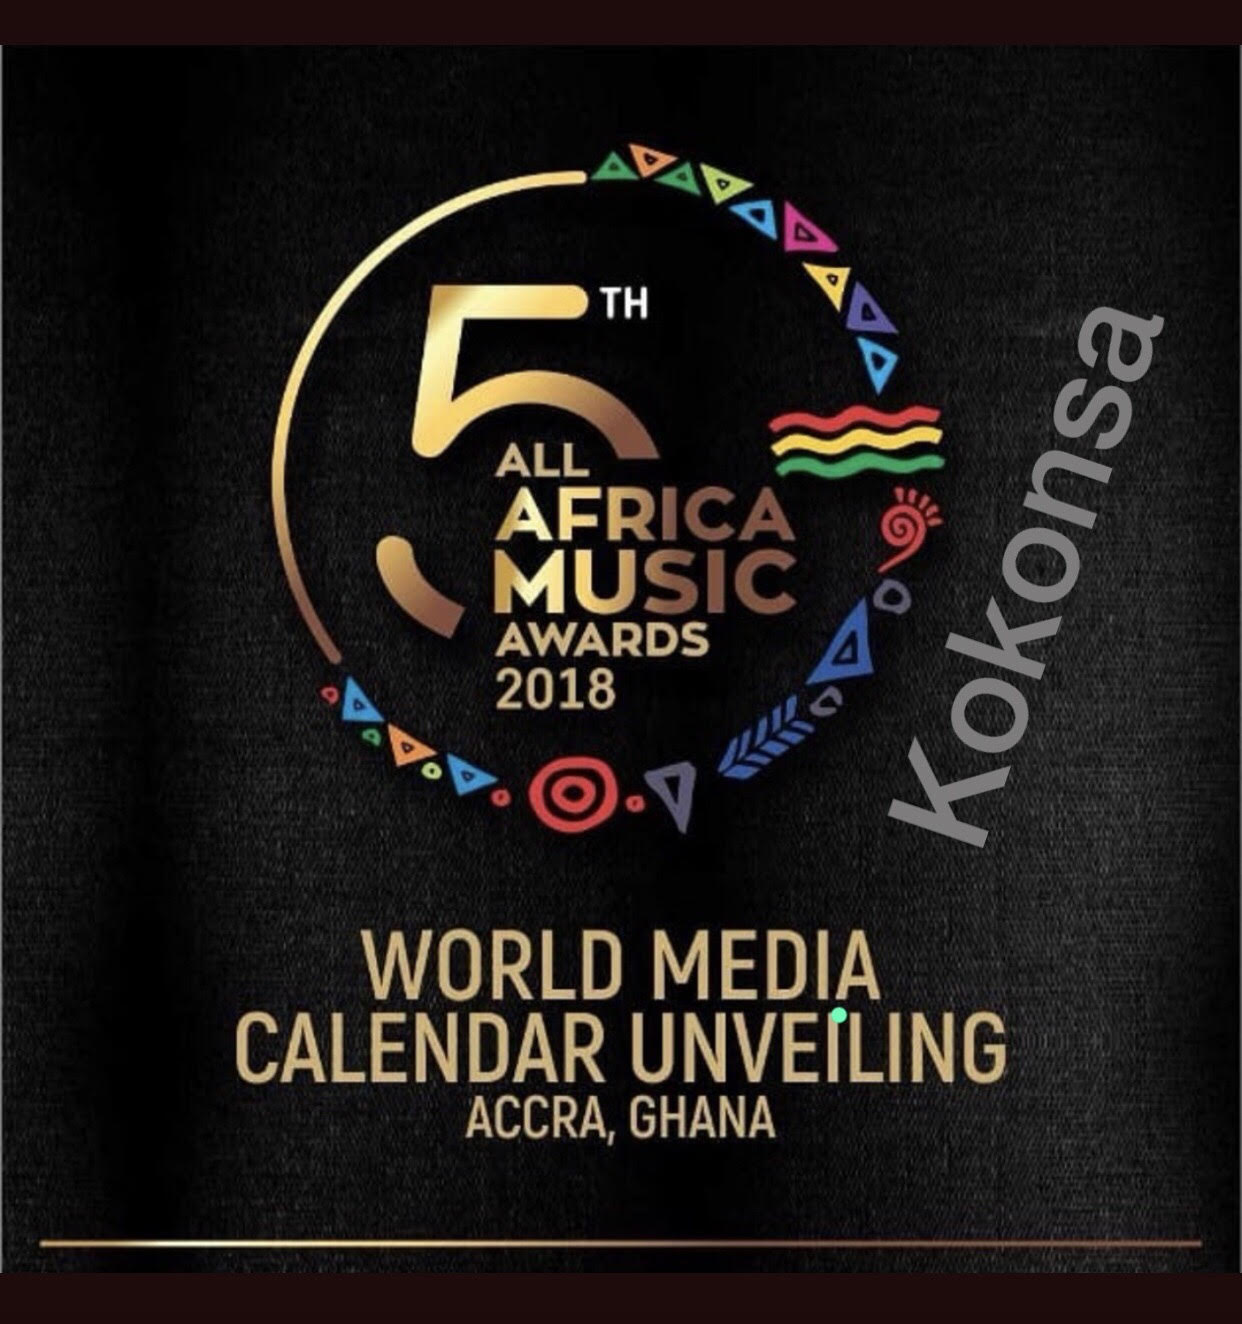 Africa Music Awards unveil calendar of events for this year's awards in Accra